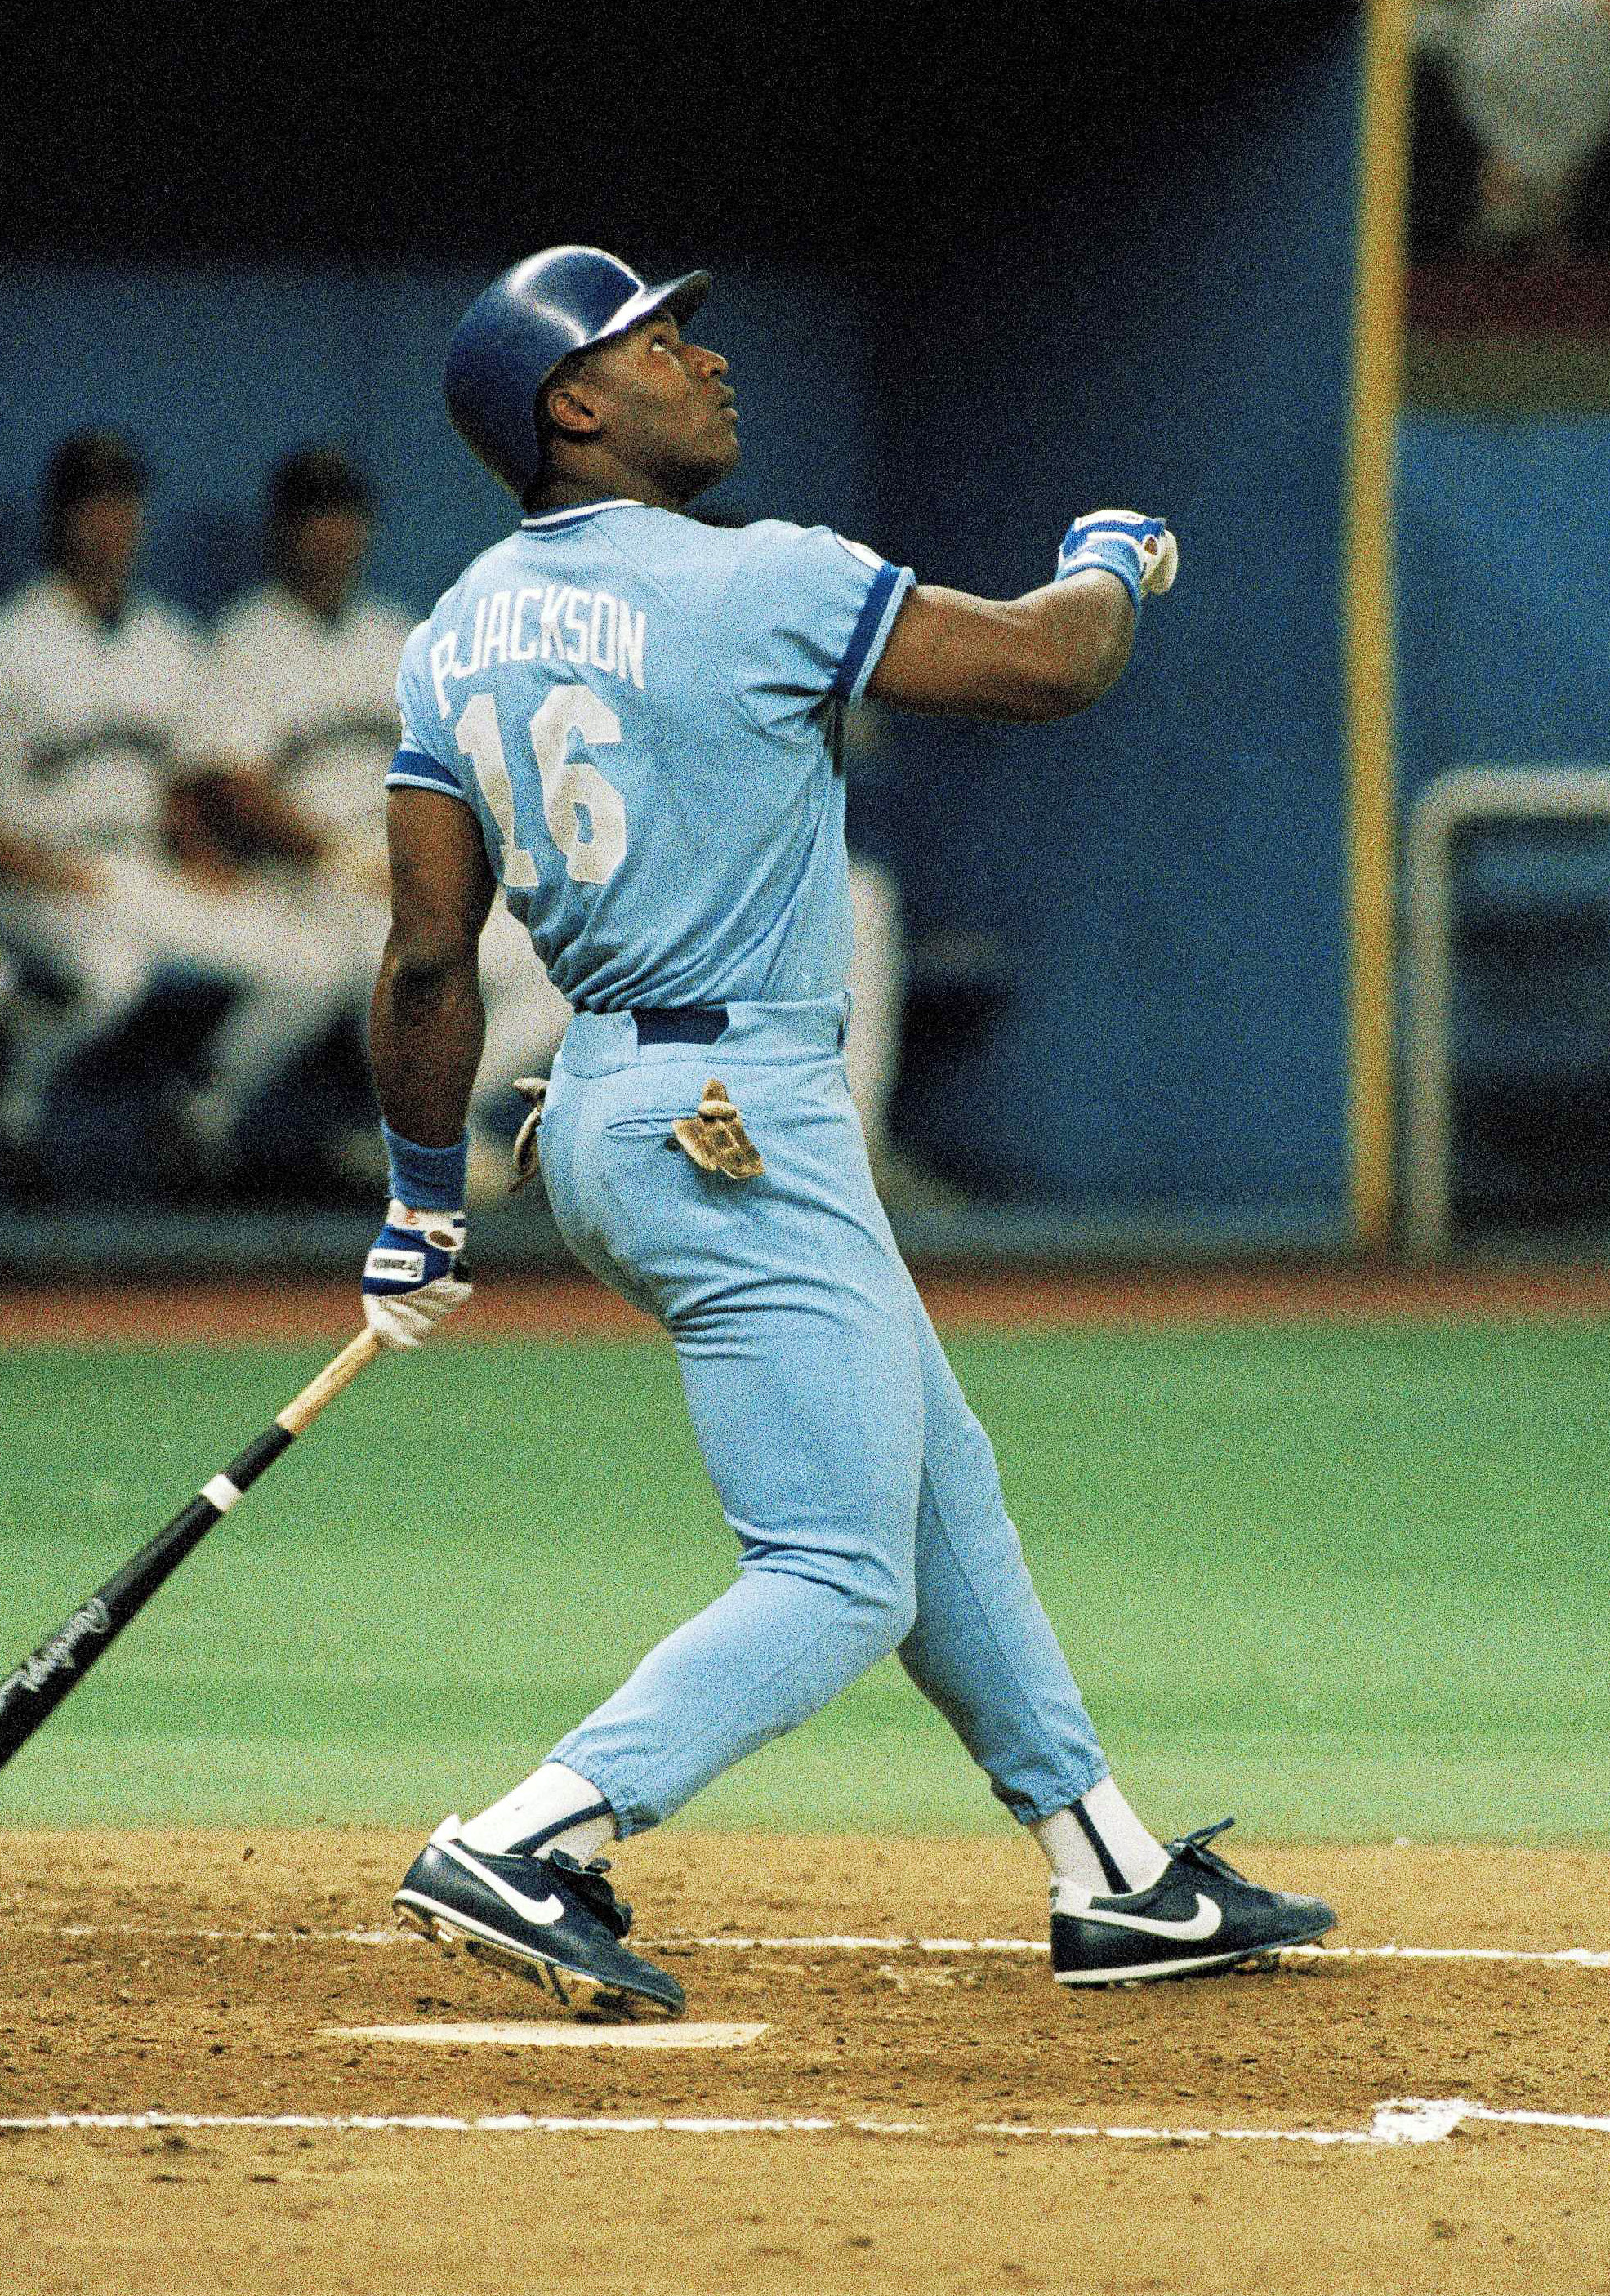 Bo Jackson's 53rd birthday is the